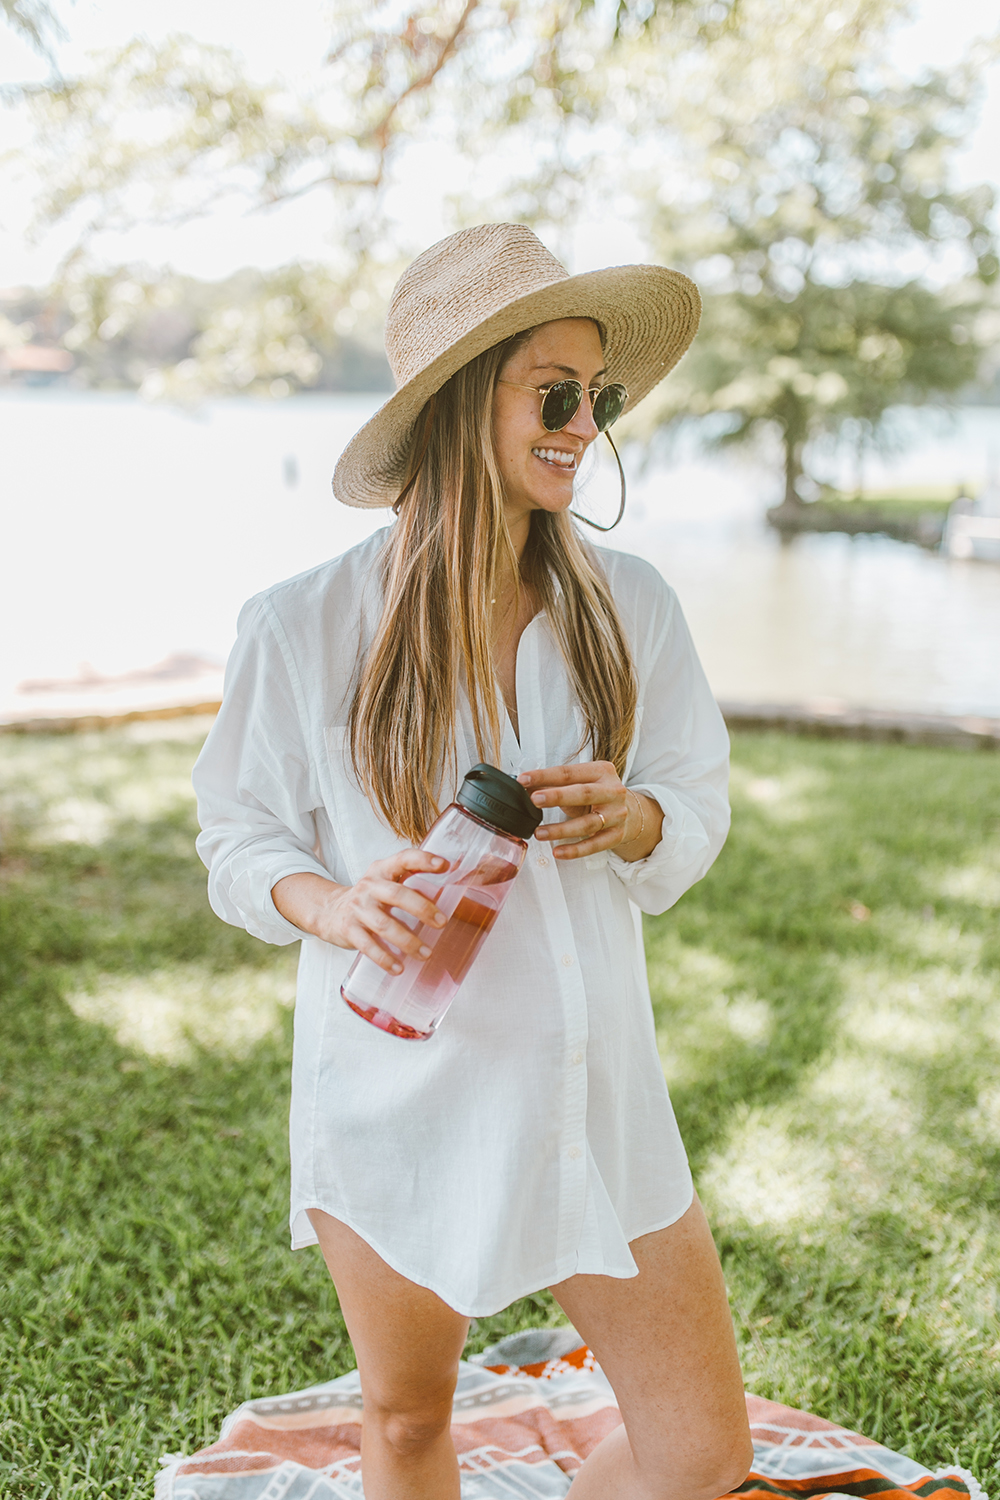 livvyland-blog-olivia-watson-lake-austin-texas-lifestyle-mom-blogger-maternity-AC-button-down-patagonia-swimsuit-cover-up-1